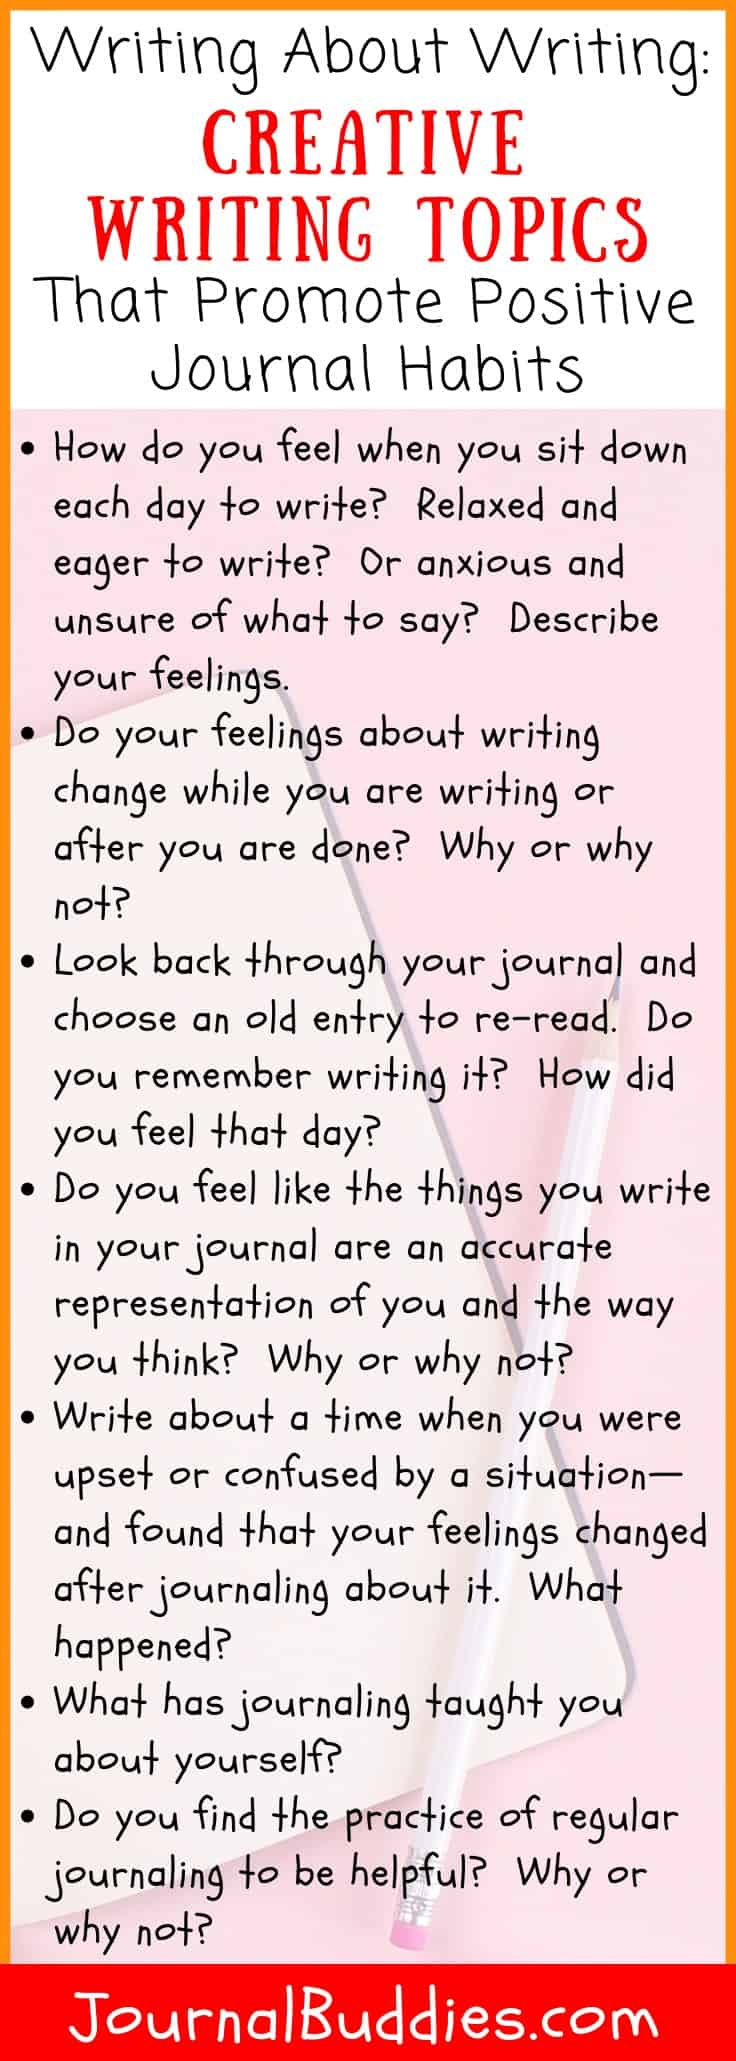 Guided Creative Writing Prompts for Fun Journaling